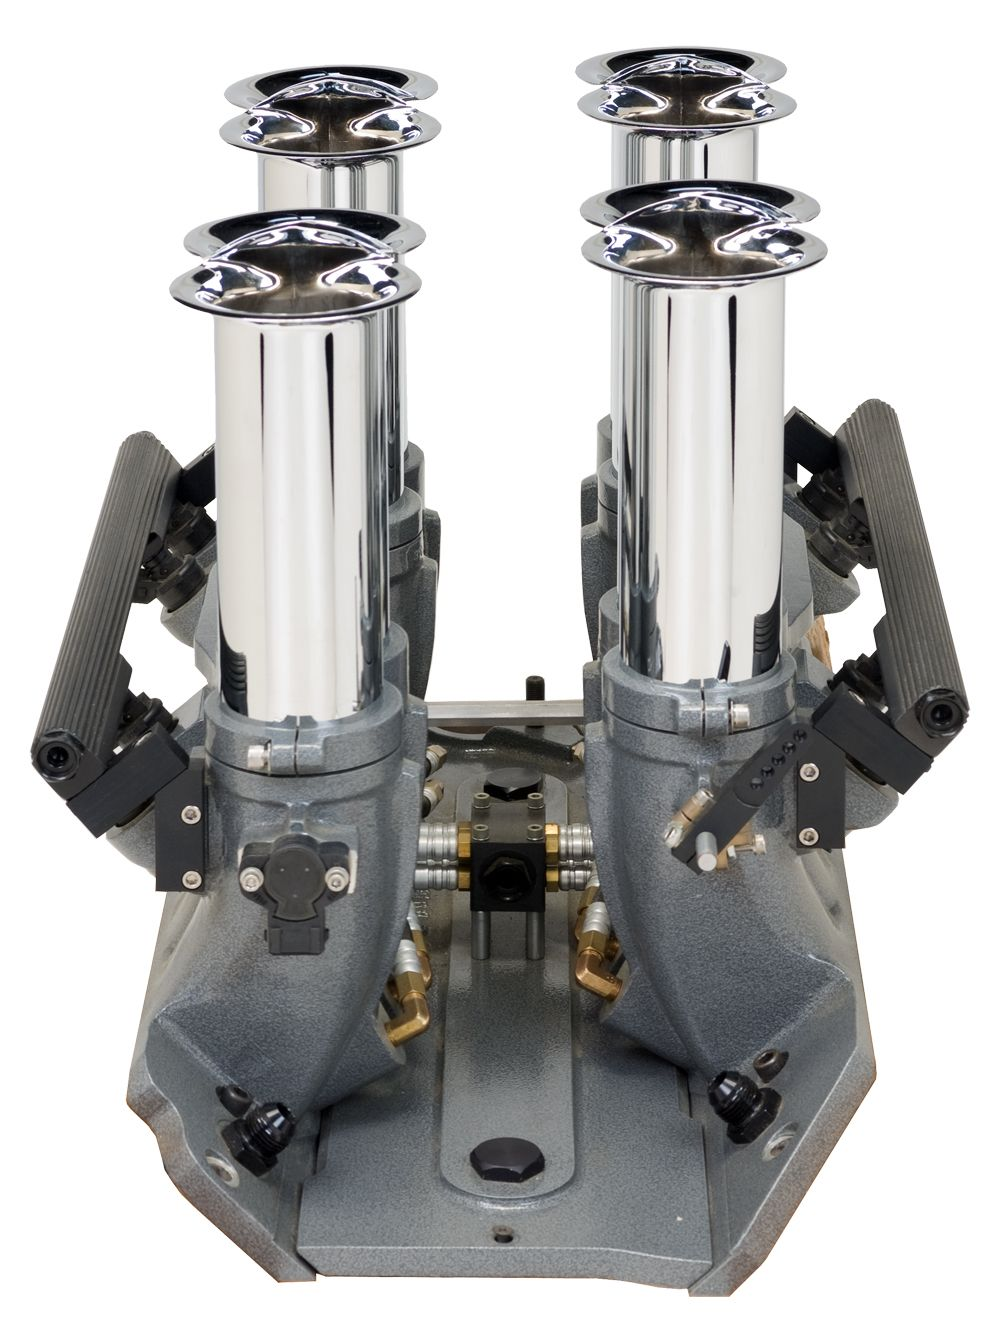 16 Inch Porn big blk chevy electronic fuel injector (3 inch bore) efi kit